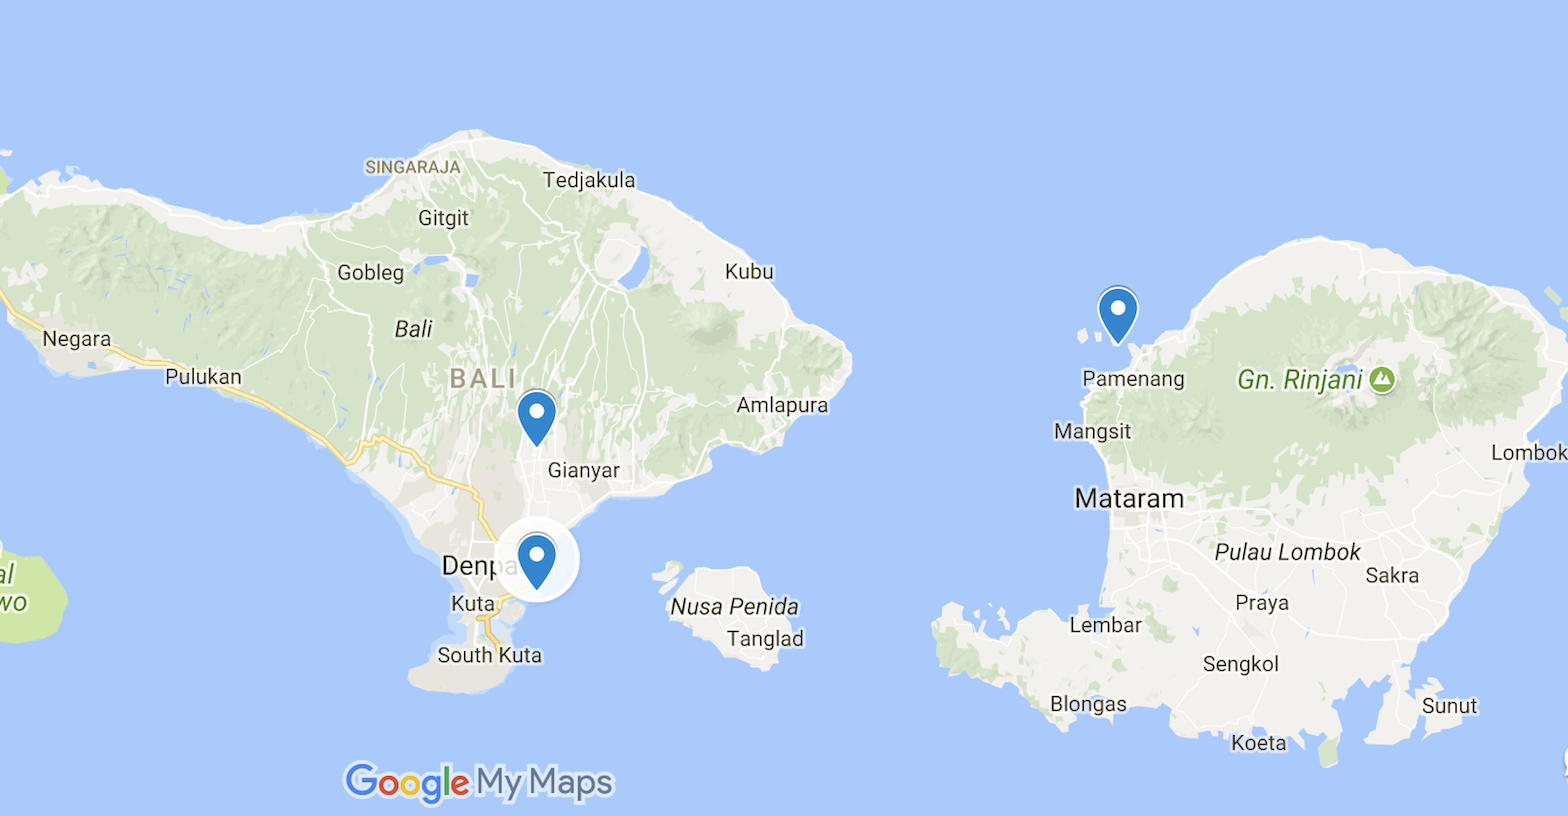 maps-bali-lombok-gili-holiliday-ask-julie-gili-travel-agency